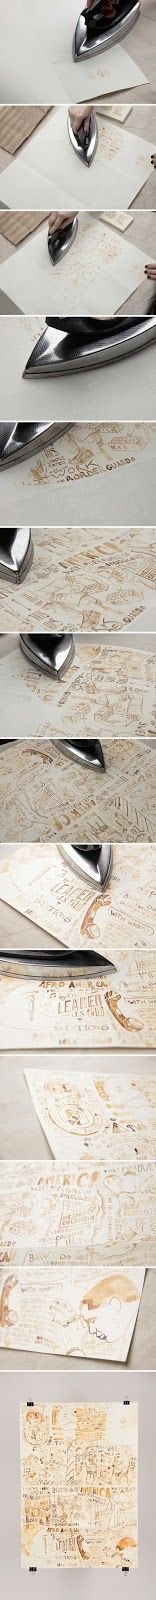 Draw with milk on paper, let dry for 30 minutes, and then iron to reveal!